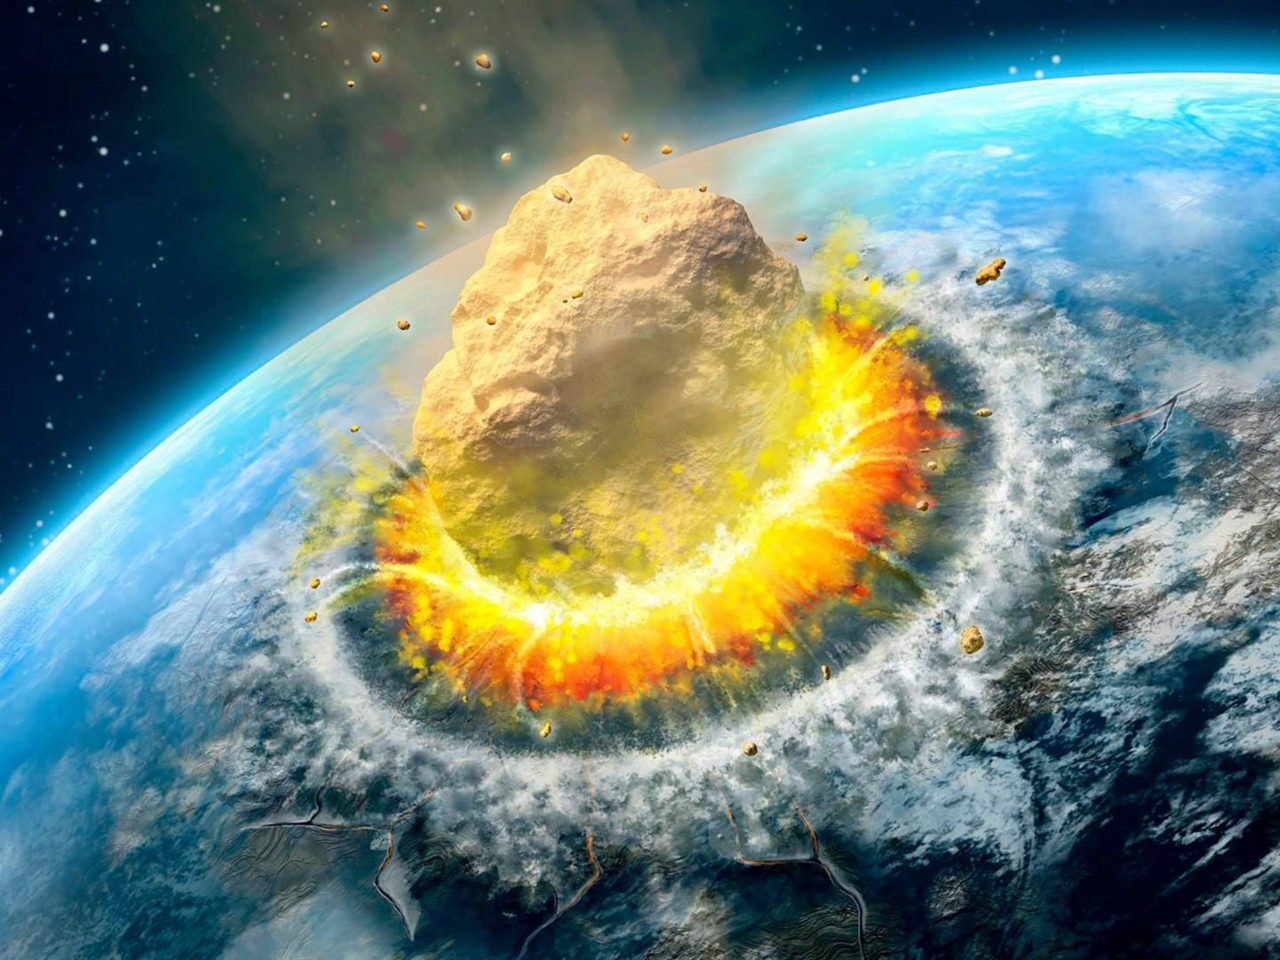 Falling Astronaut Iphone Wallpaper Asteroid Impact Falling Asteroid On Earth Ultra Hd